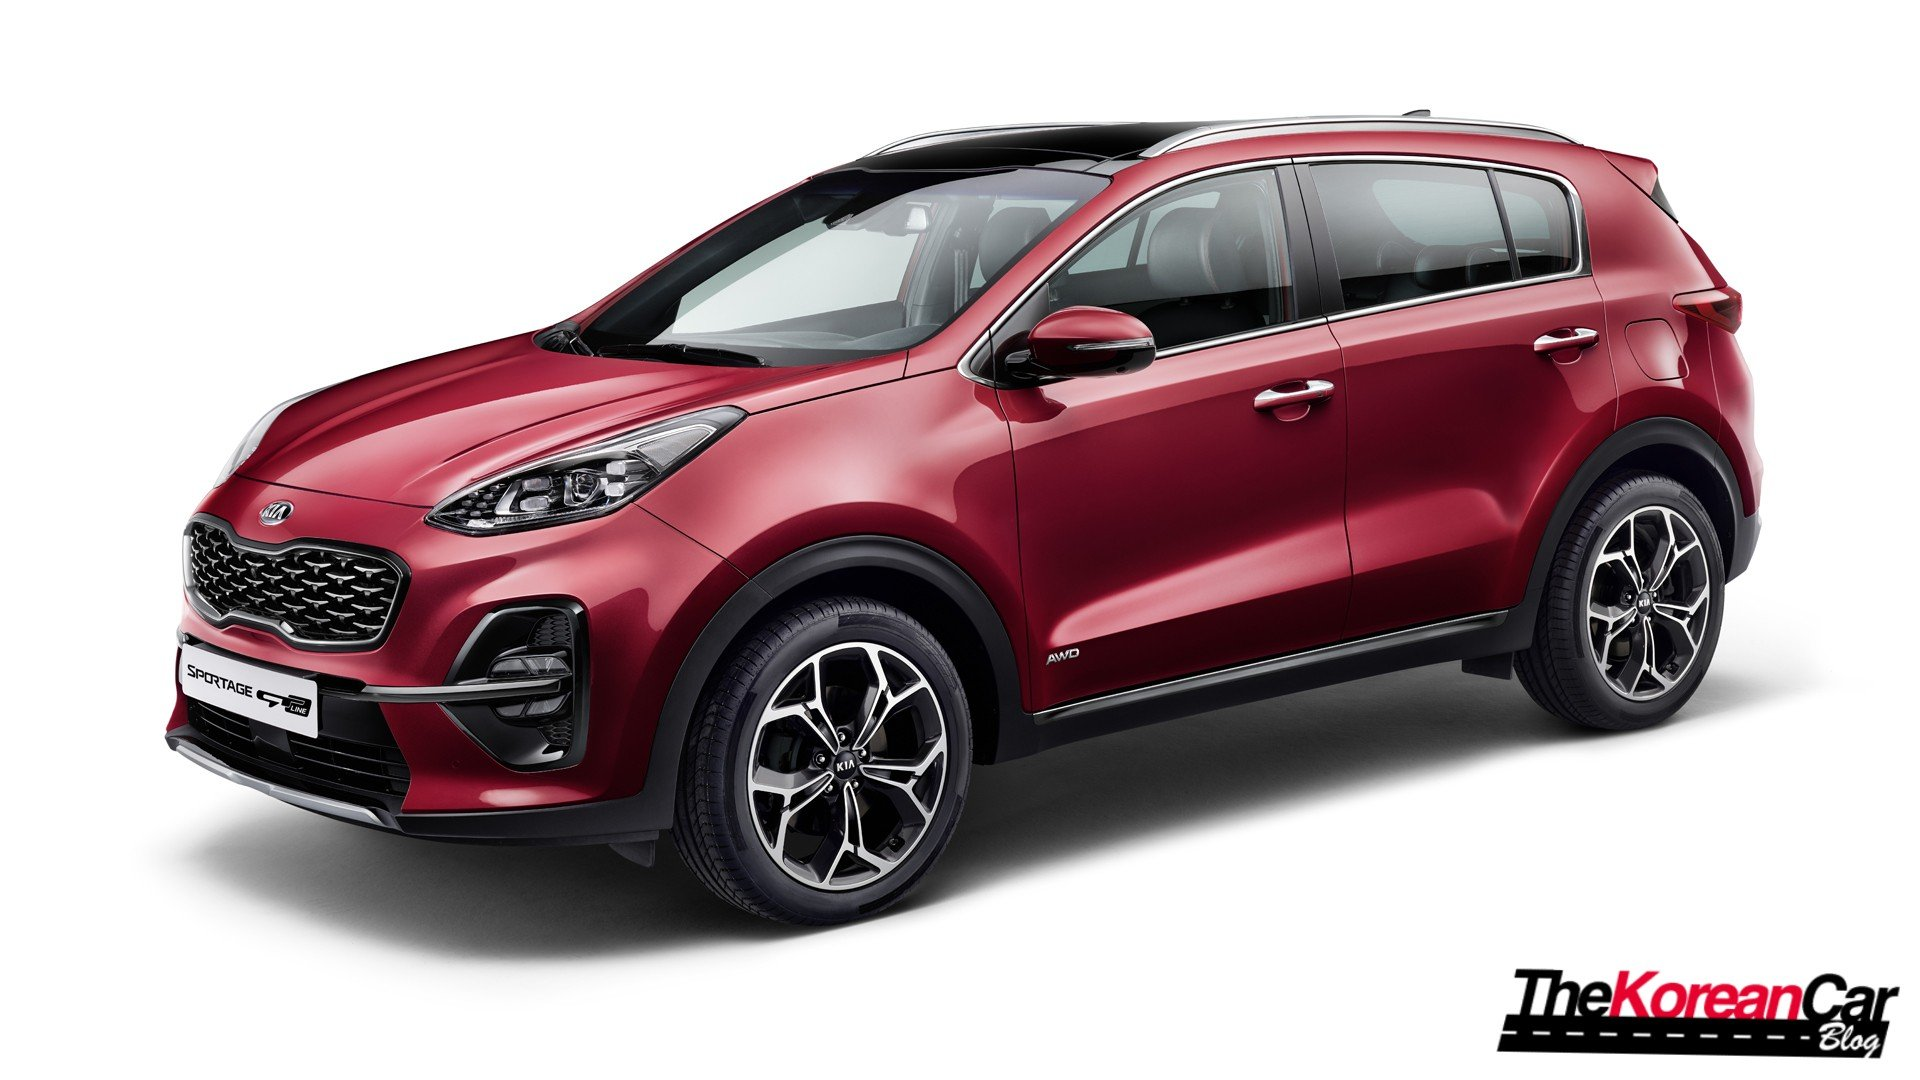 Kia Sportage Facelift unveiled with diesel mild-hybrid engine and new tech